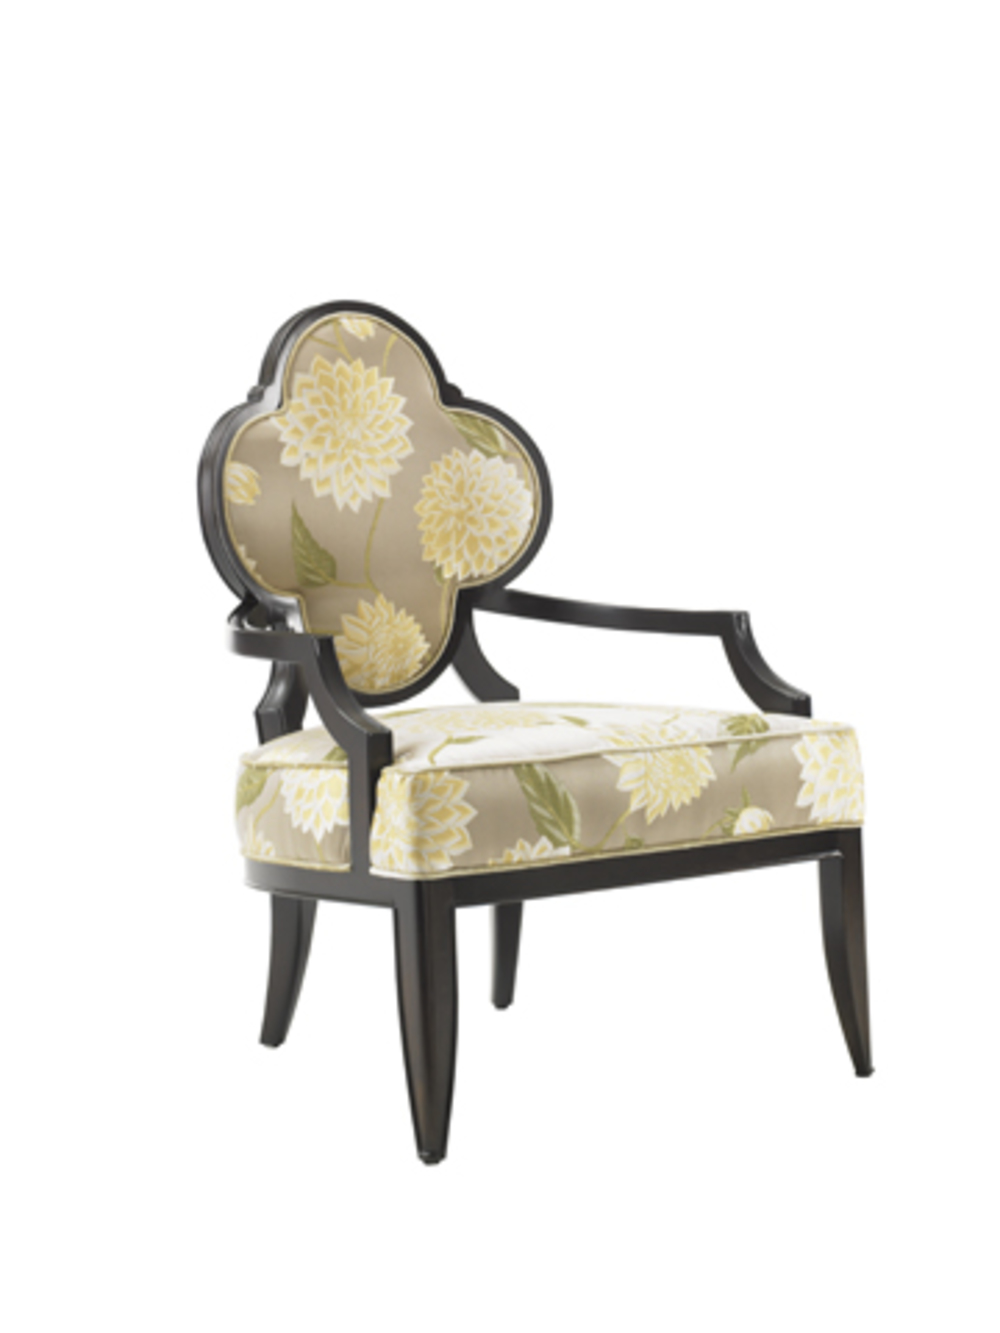 LEXINGTON HOME BRANDS - Alhambra Chair